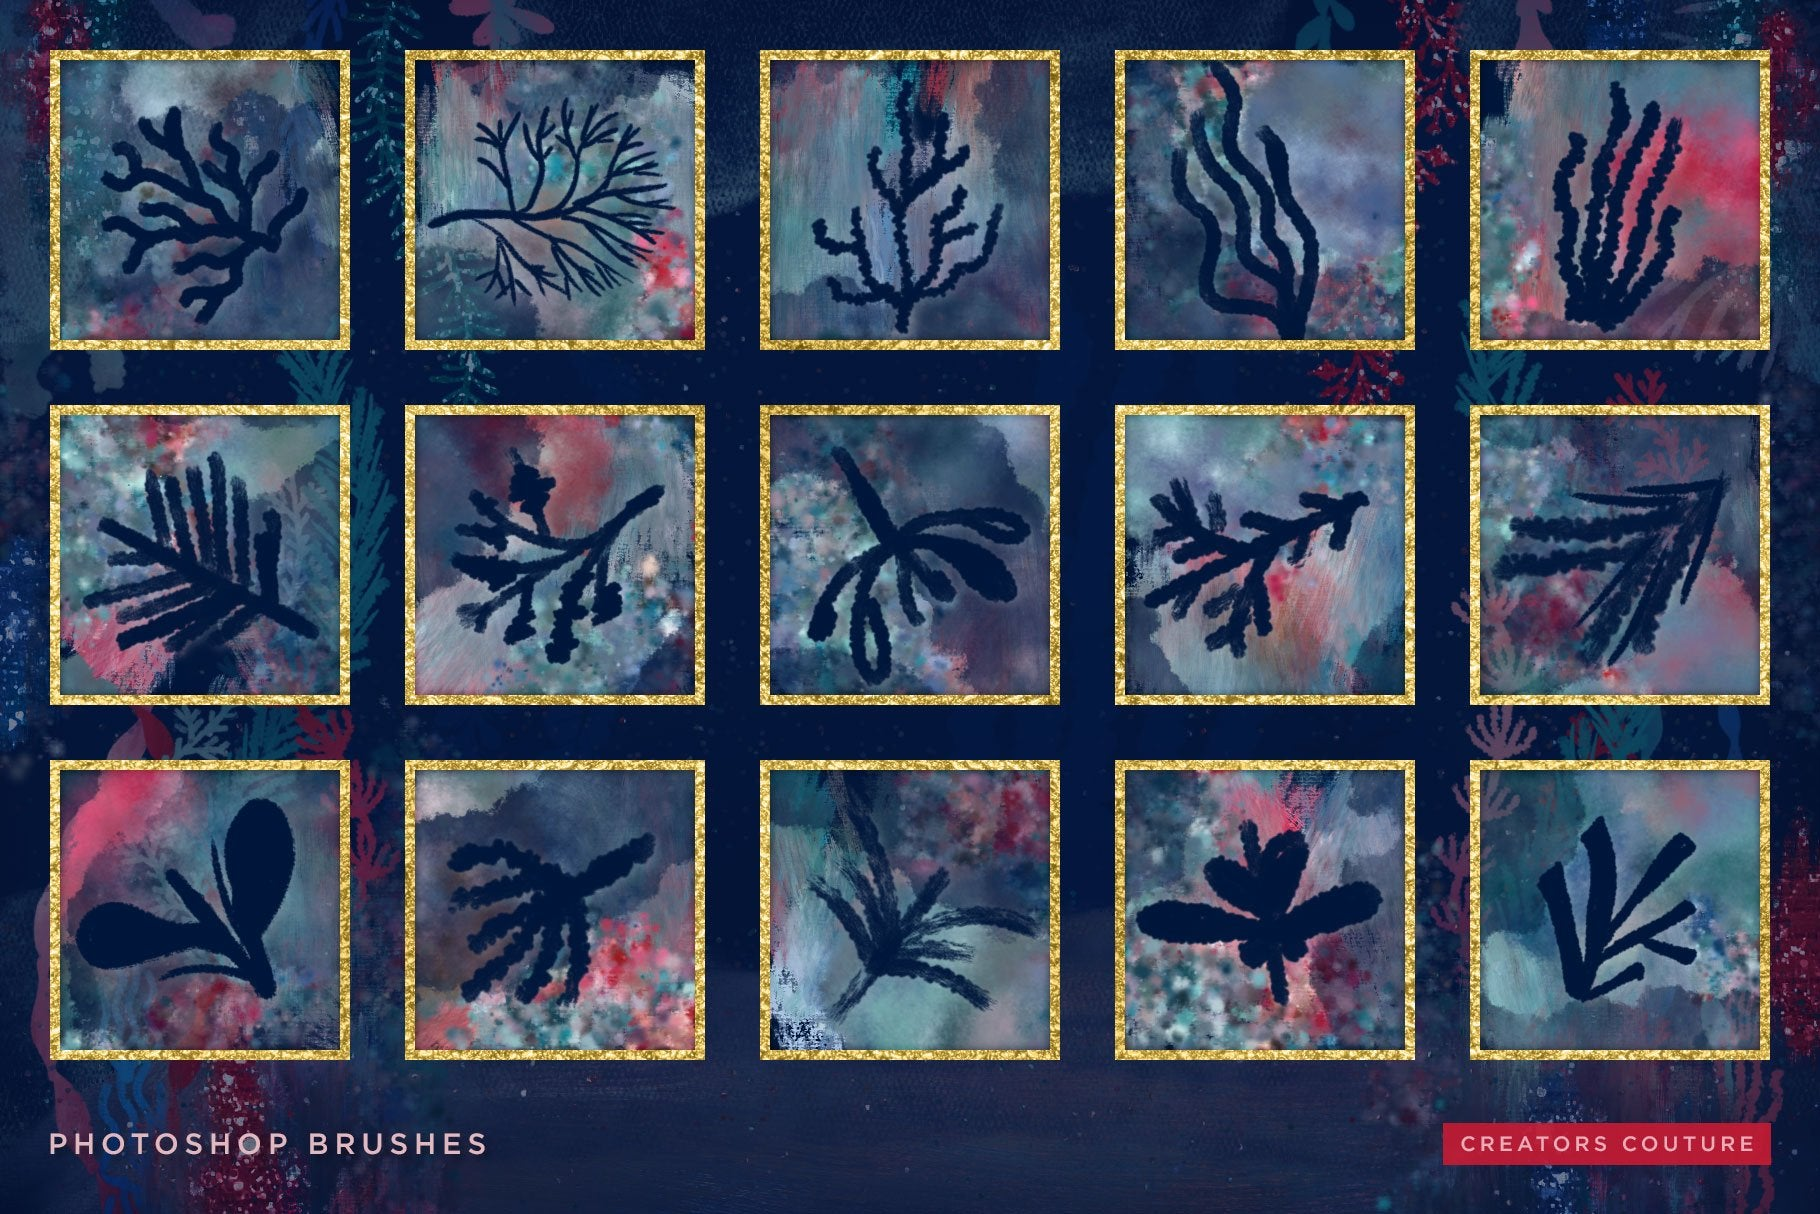 Seaweed & Coral Dreamy Hand Illustrated brushes for Photoshop, brush preview sheet